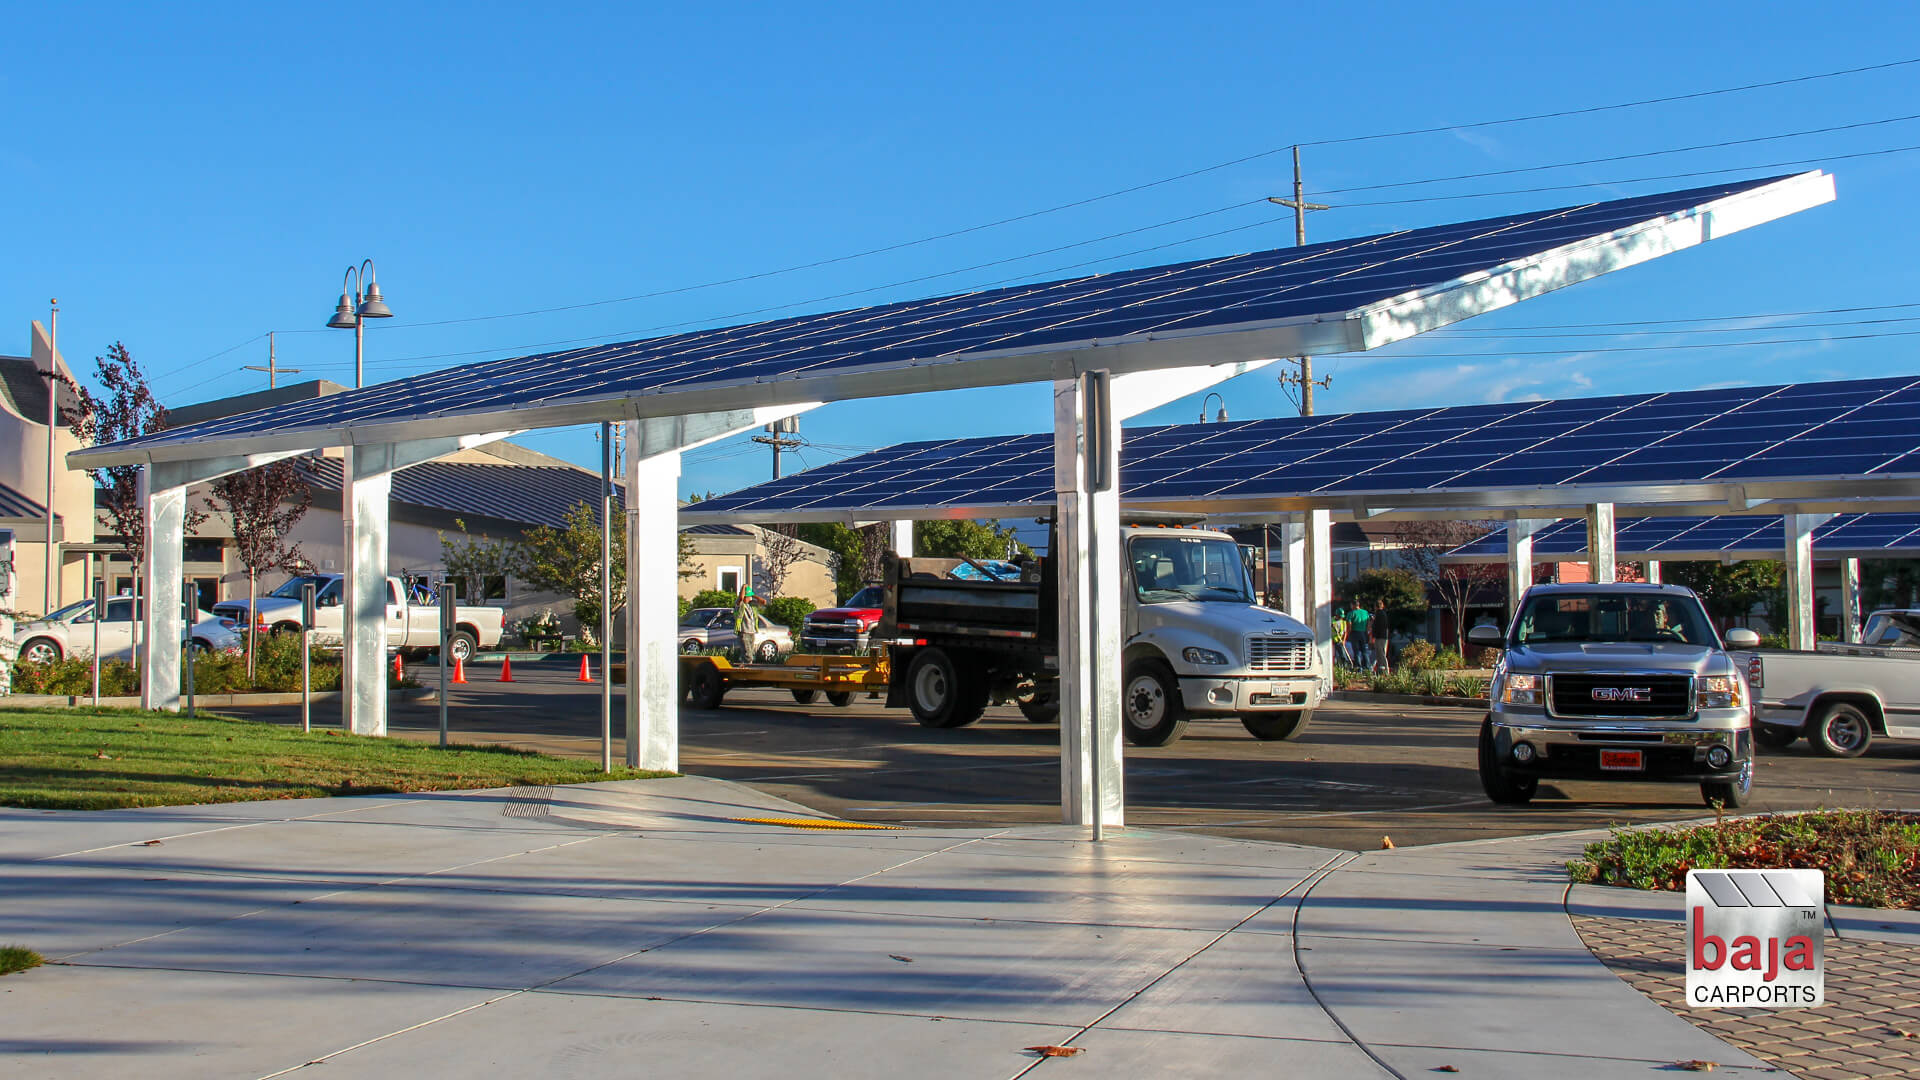 napa california students and teachers park under solar carports